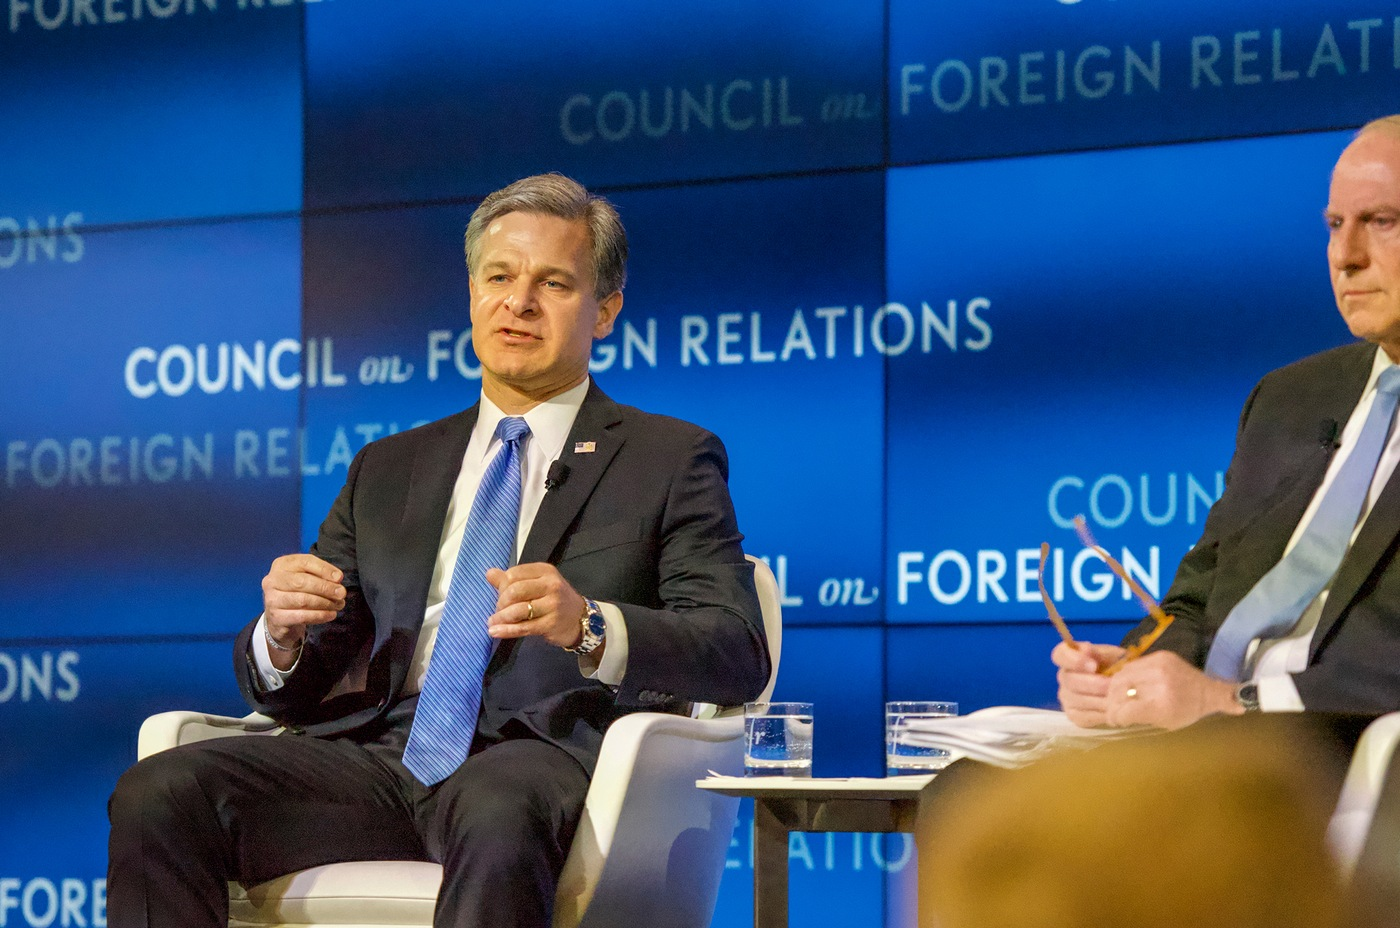 FBI Director Christopher Wray answers questions during an interview with Richard N. Haass, president of the Council on Foreign Relations, on April 26, 2019 in Washington, D.C.